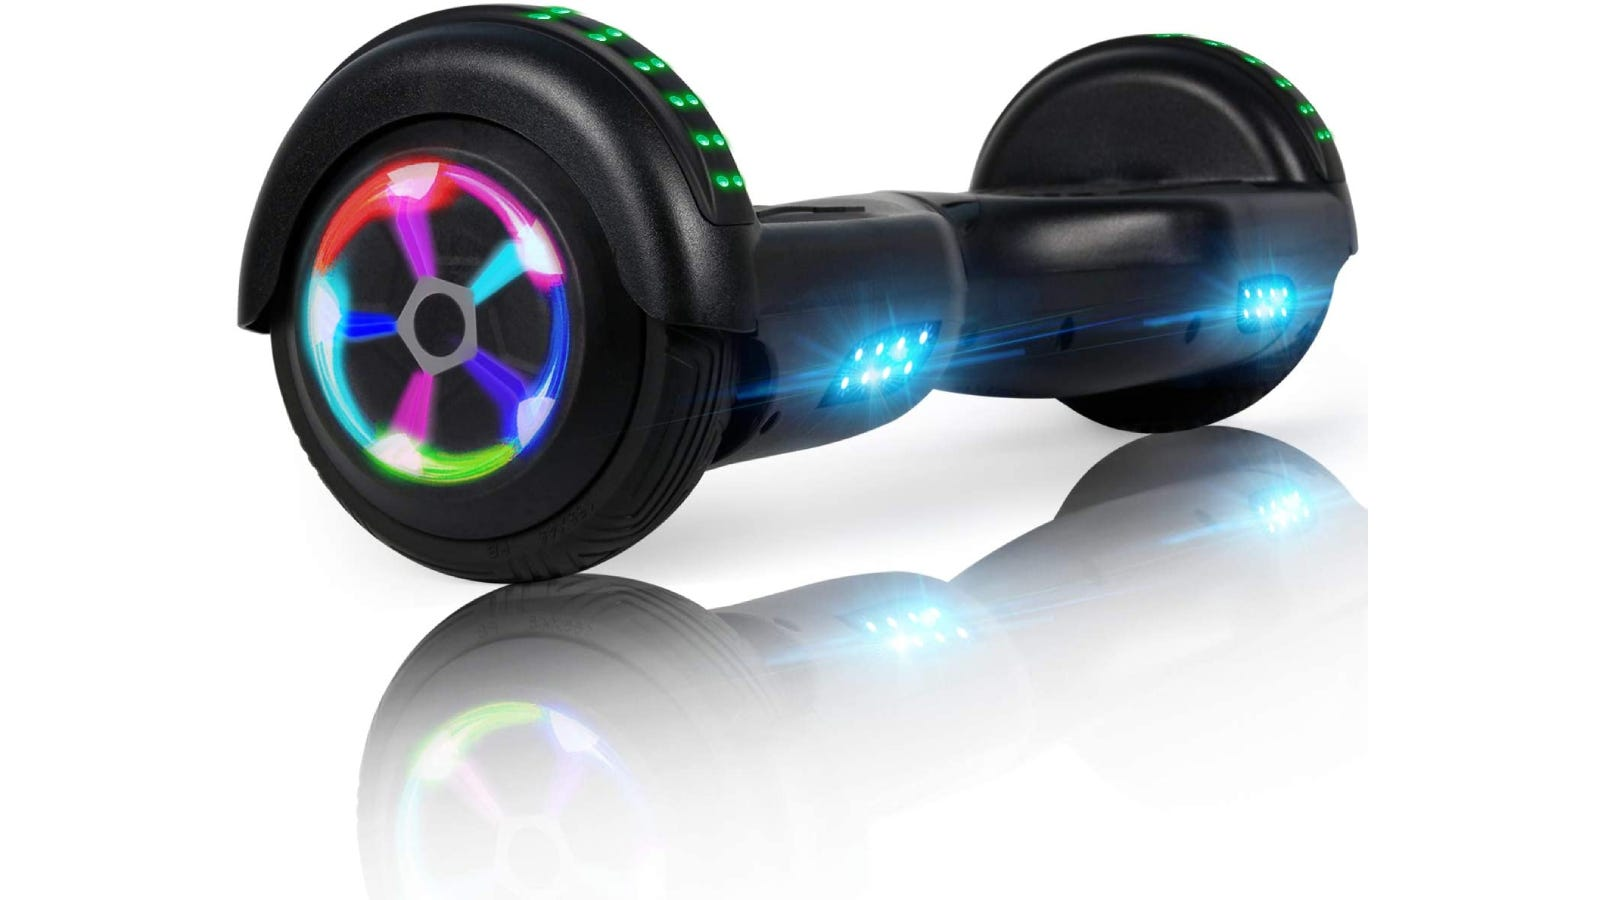 a black hoverboard with multicolored lights on the side, top, and front